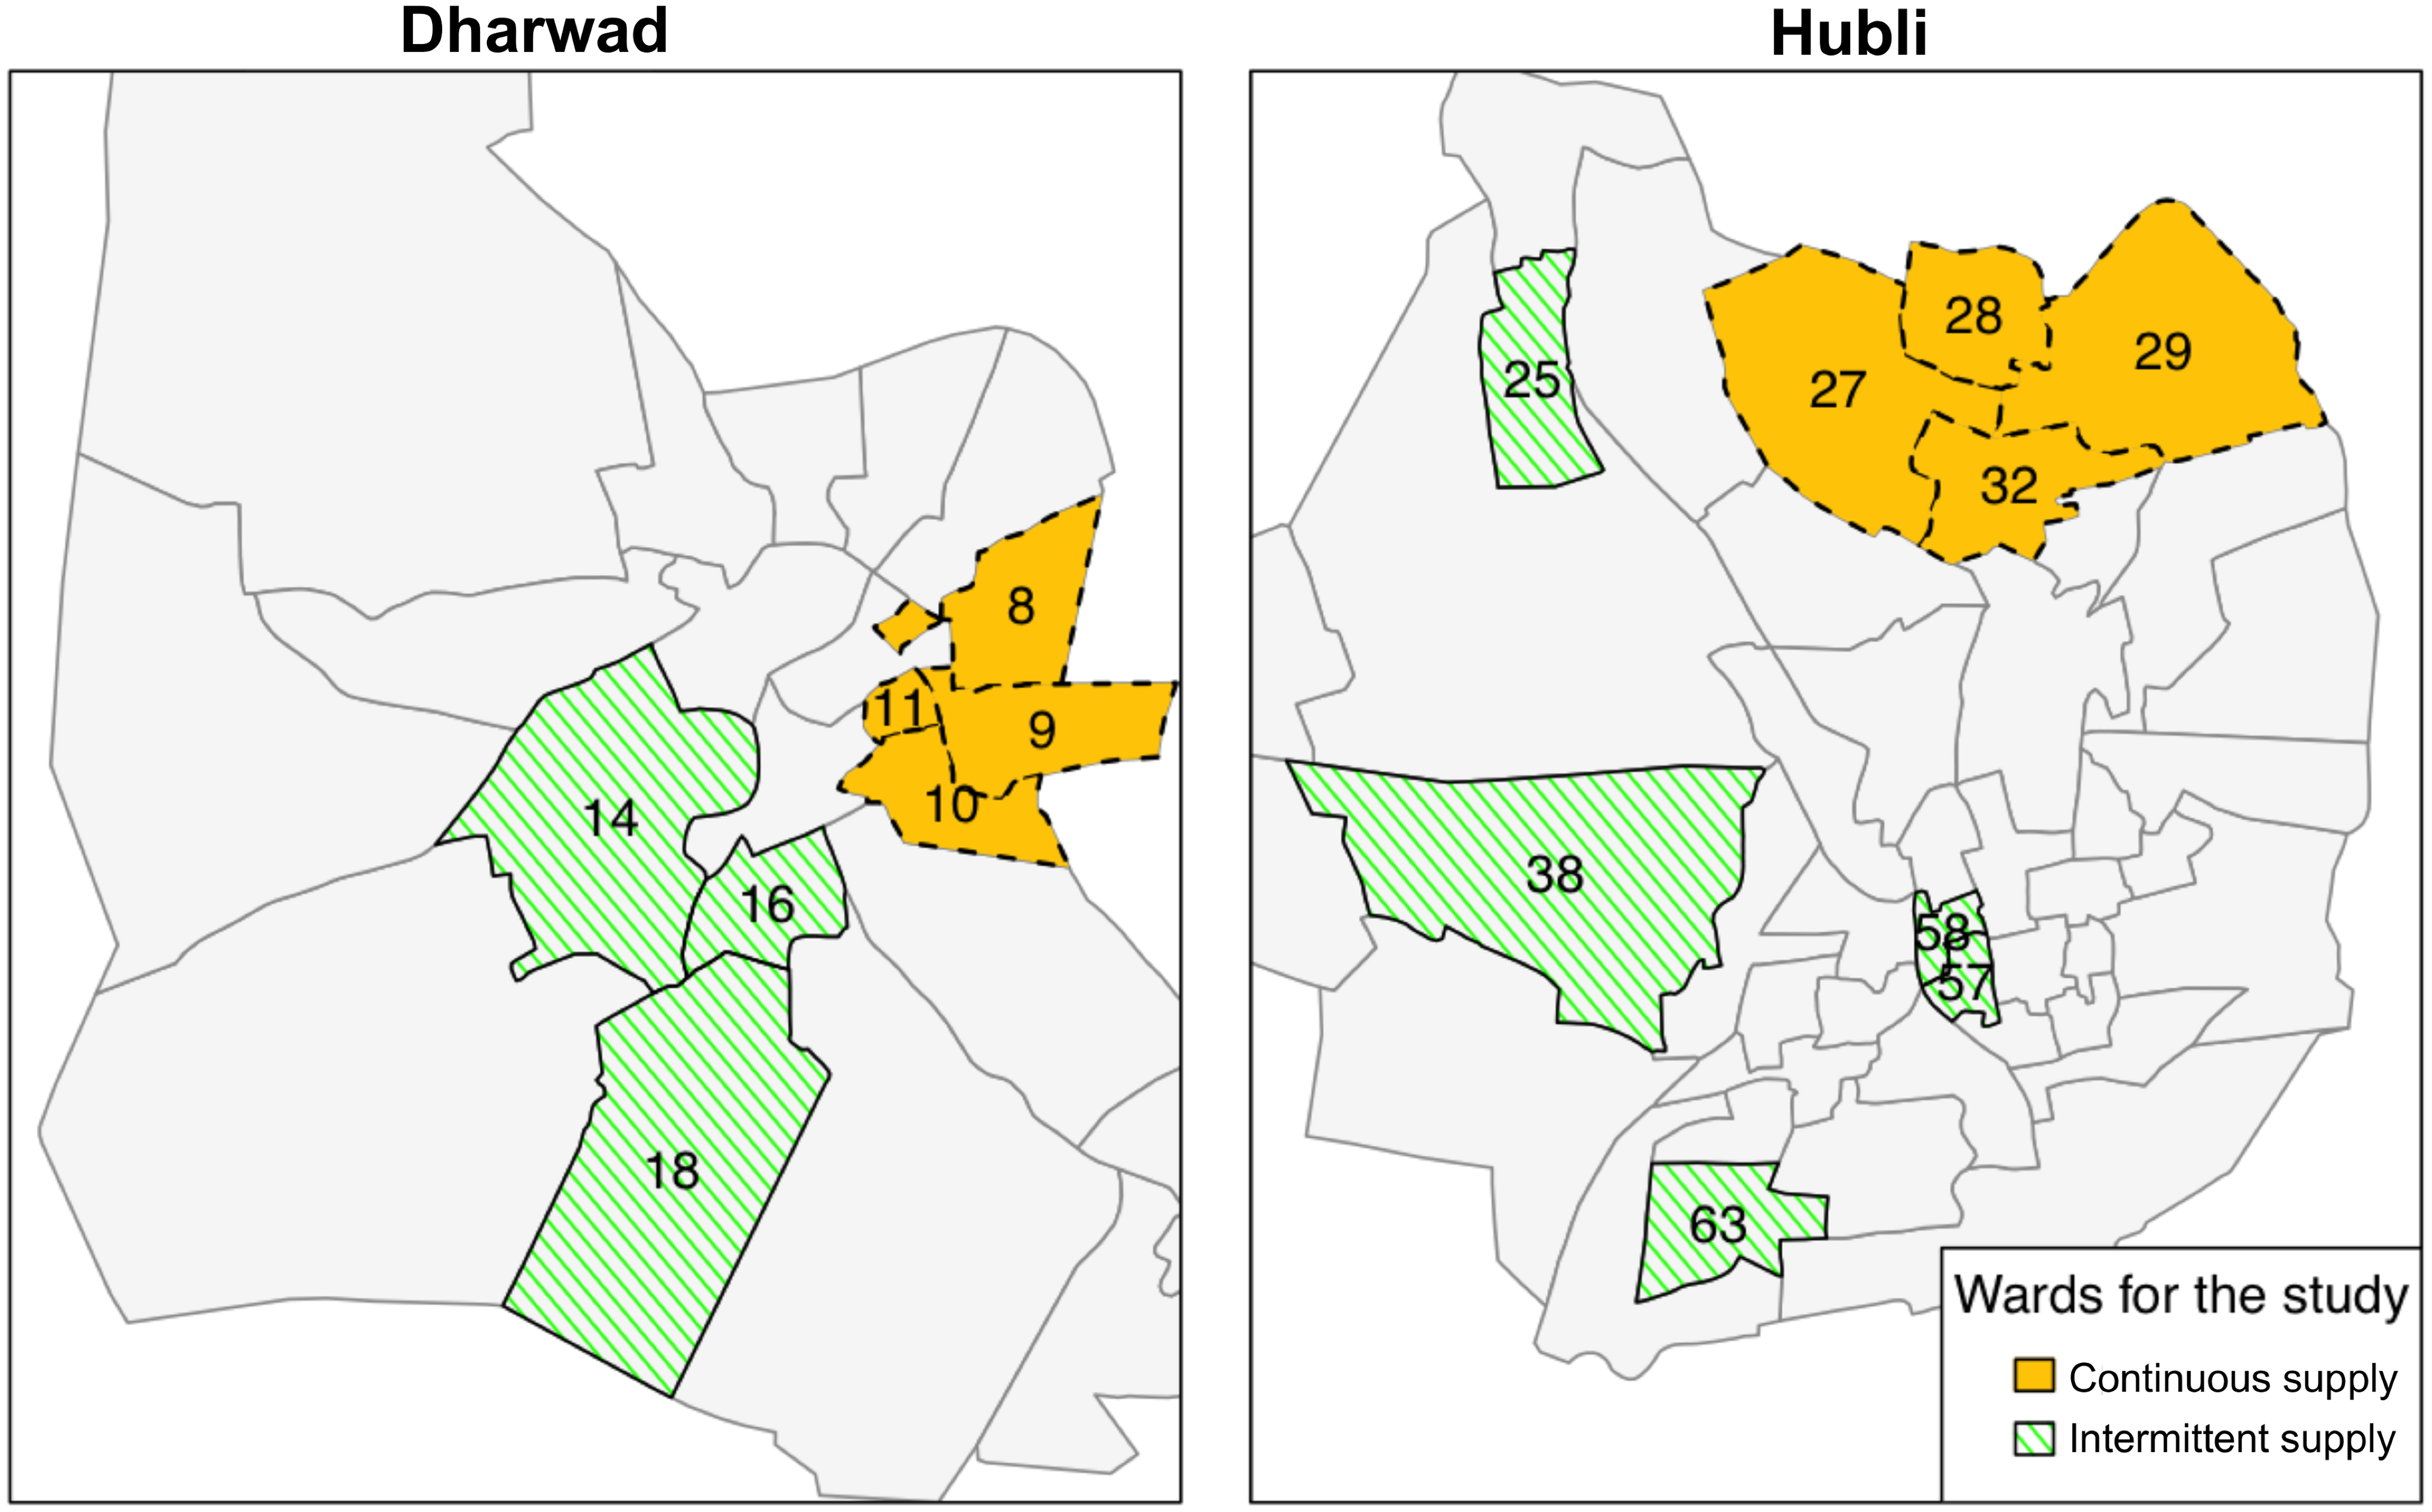 Study wards with intermittent and continuous supply in Hubli-Dharwad.